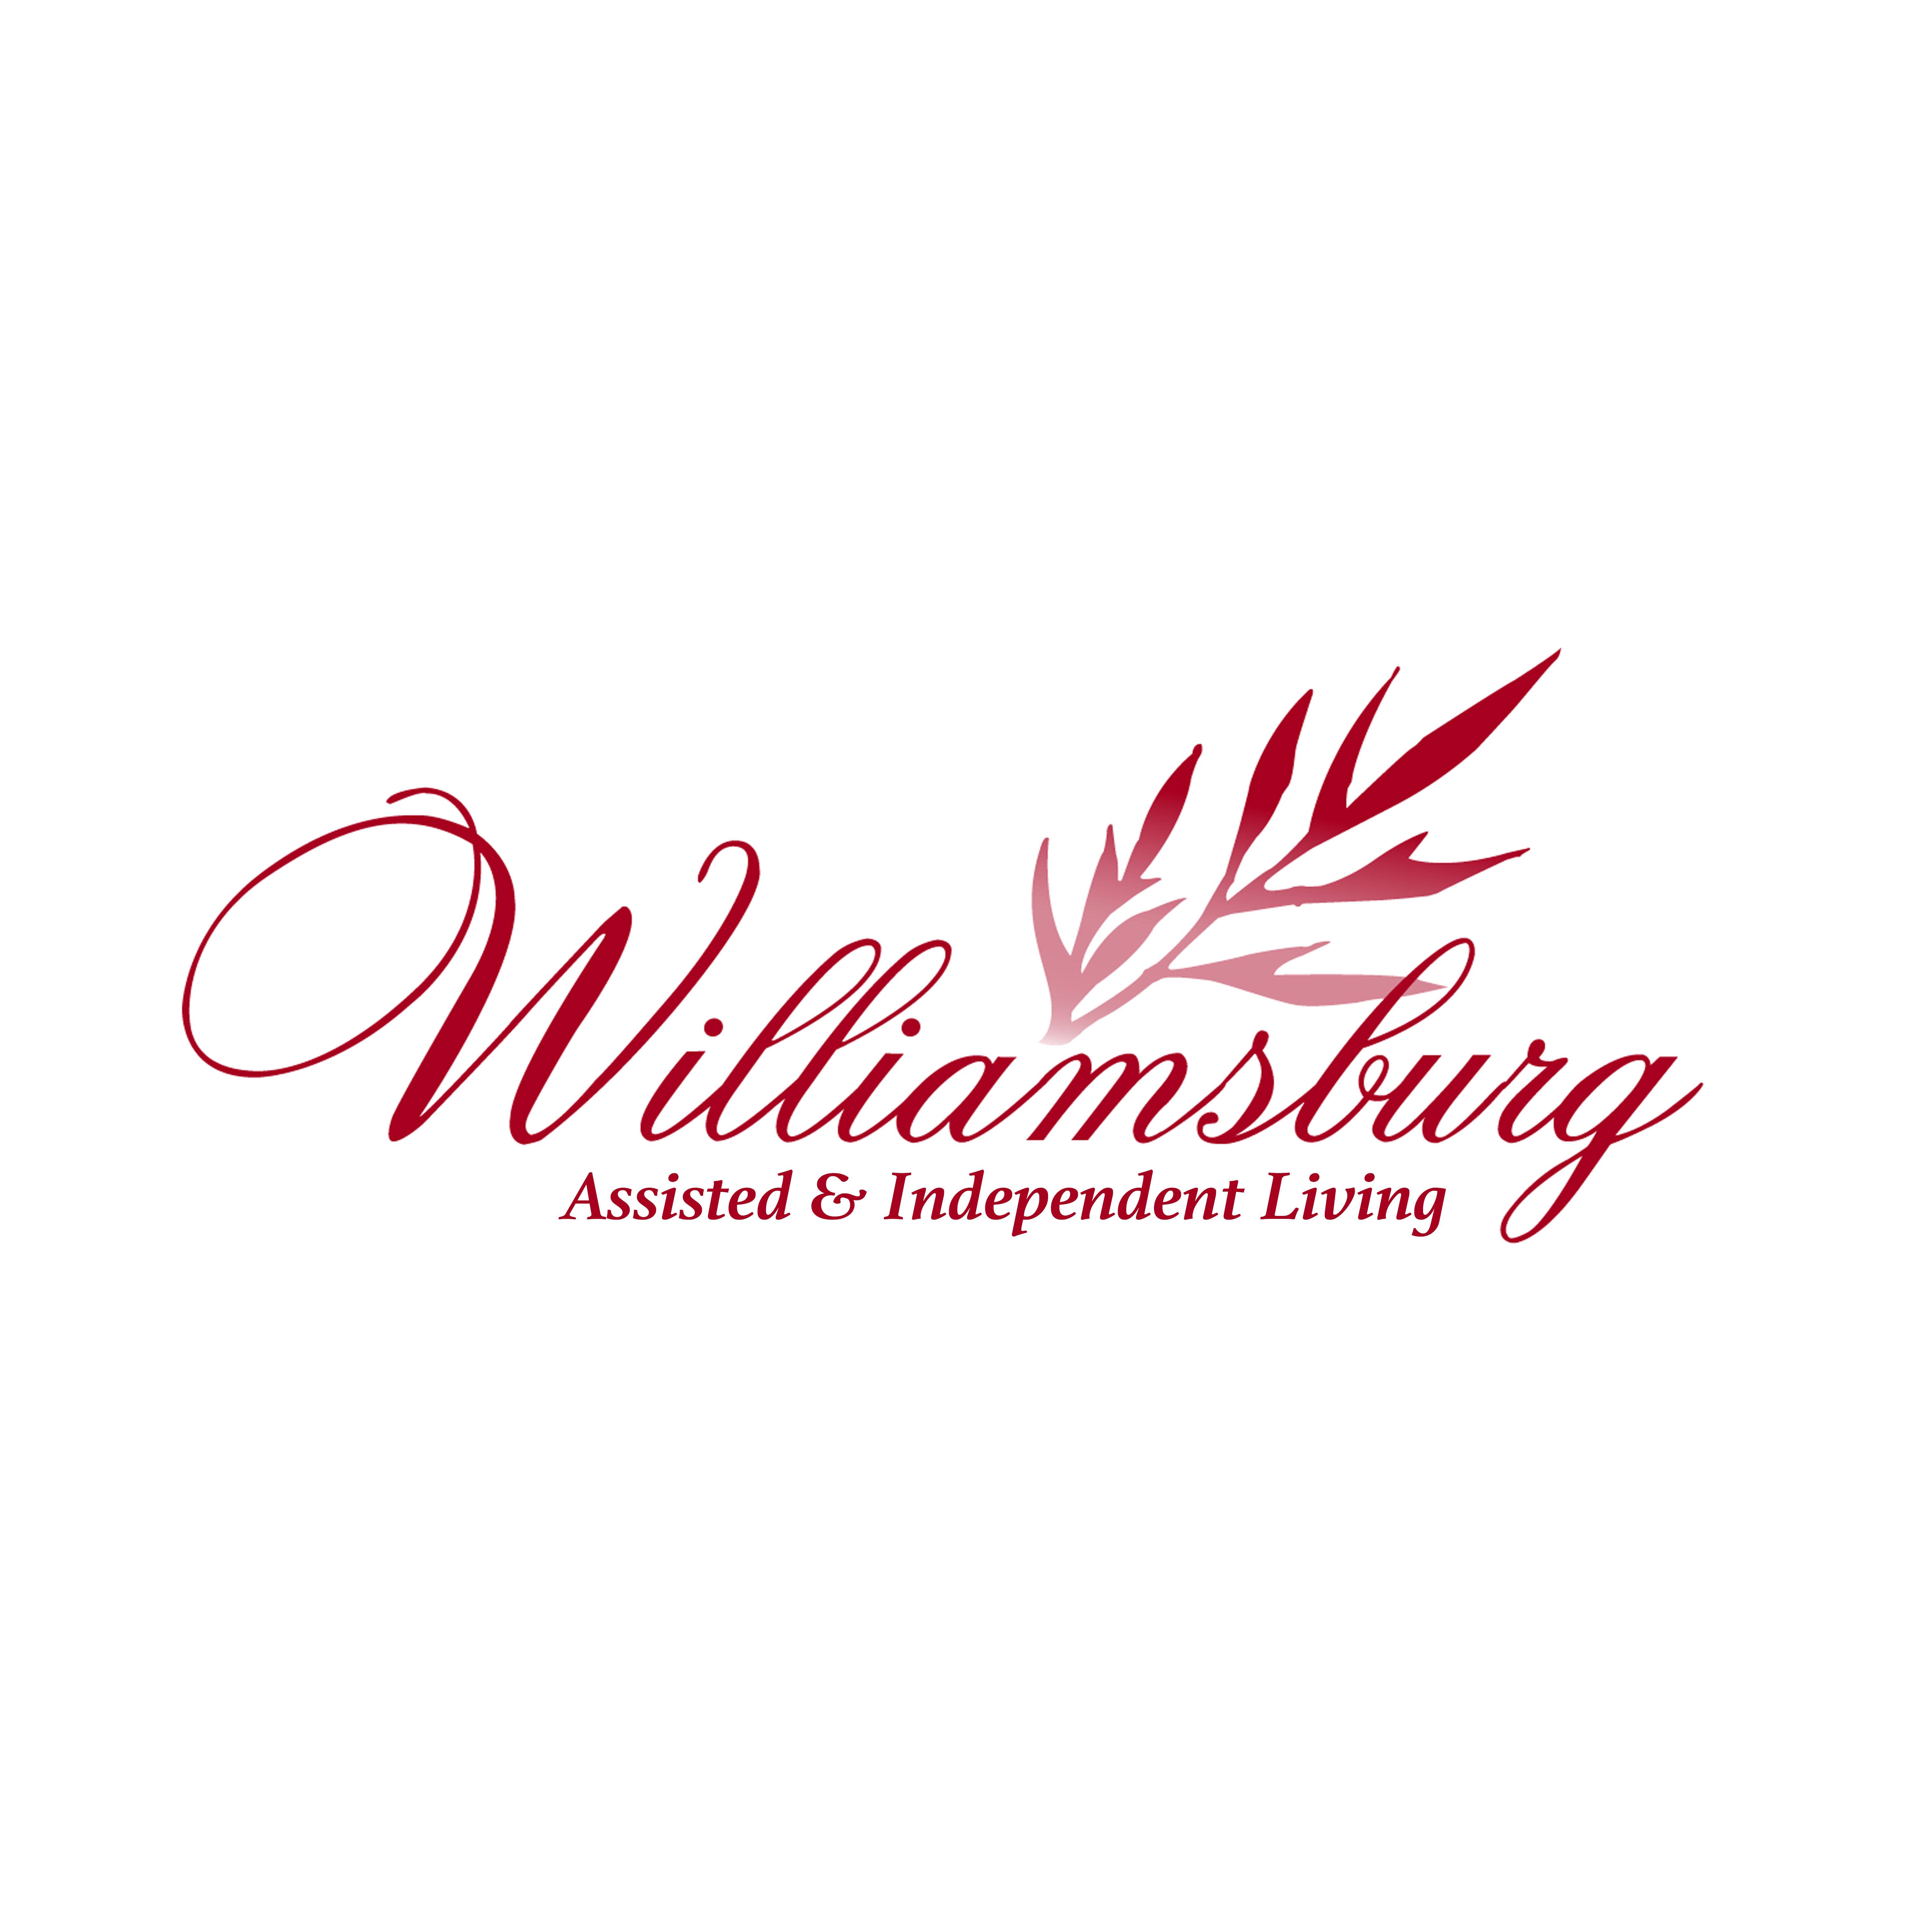 Williamsburg Retirement and Assisted Living